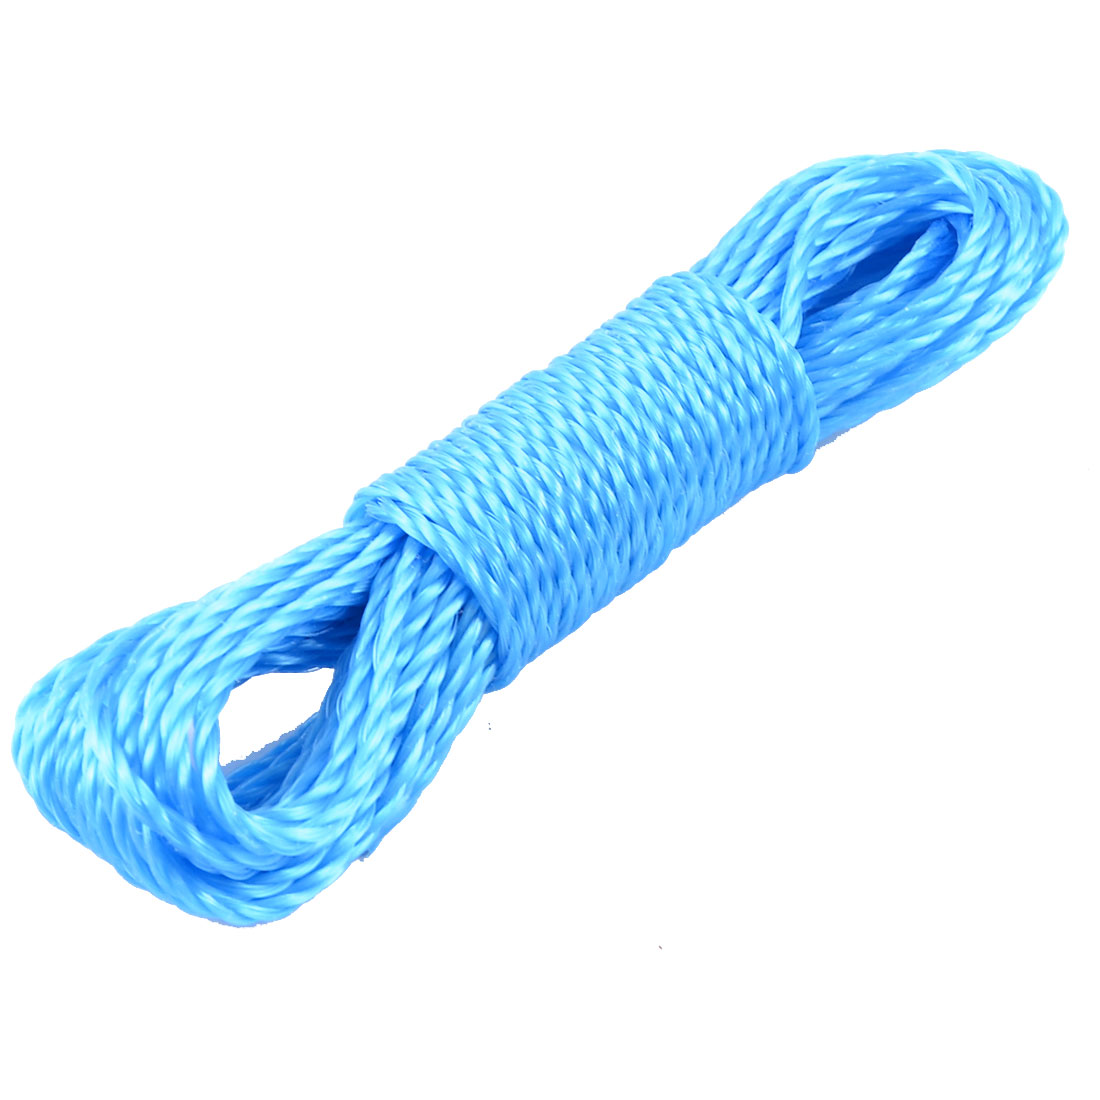 14.5M Long Blue Nylon Twisted Clothes Hanging Rope Clothesline